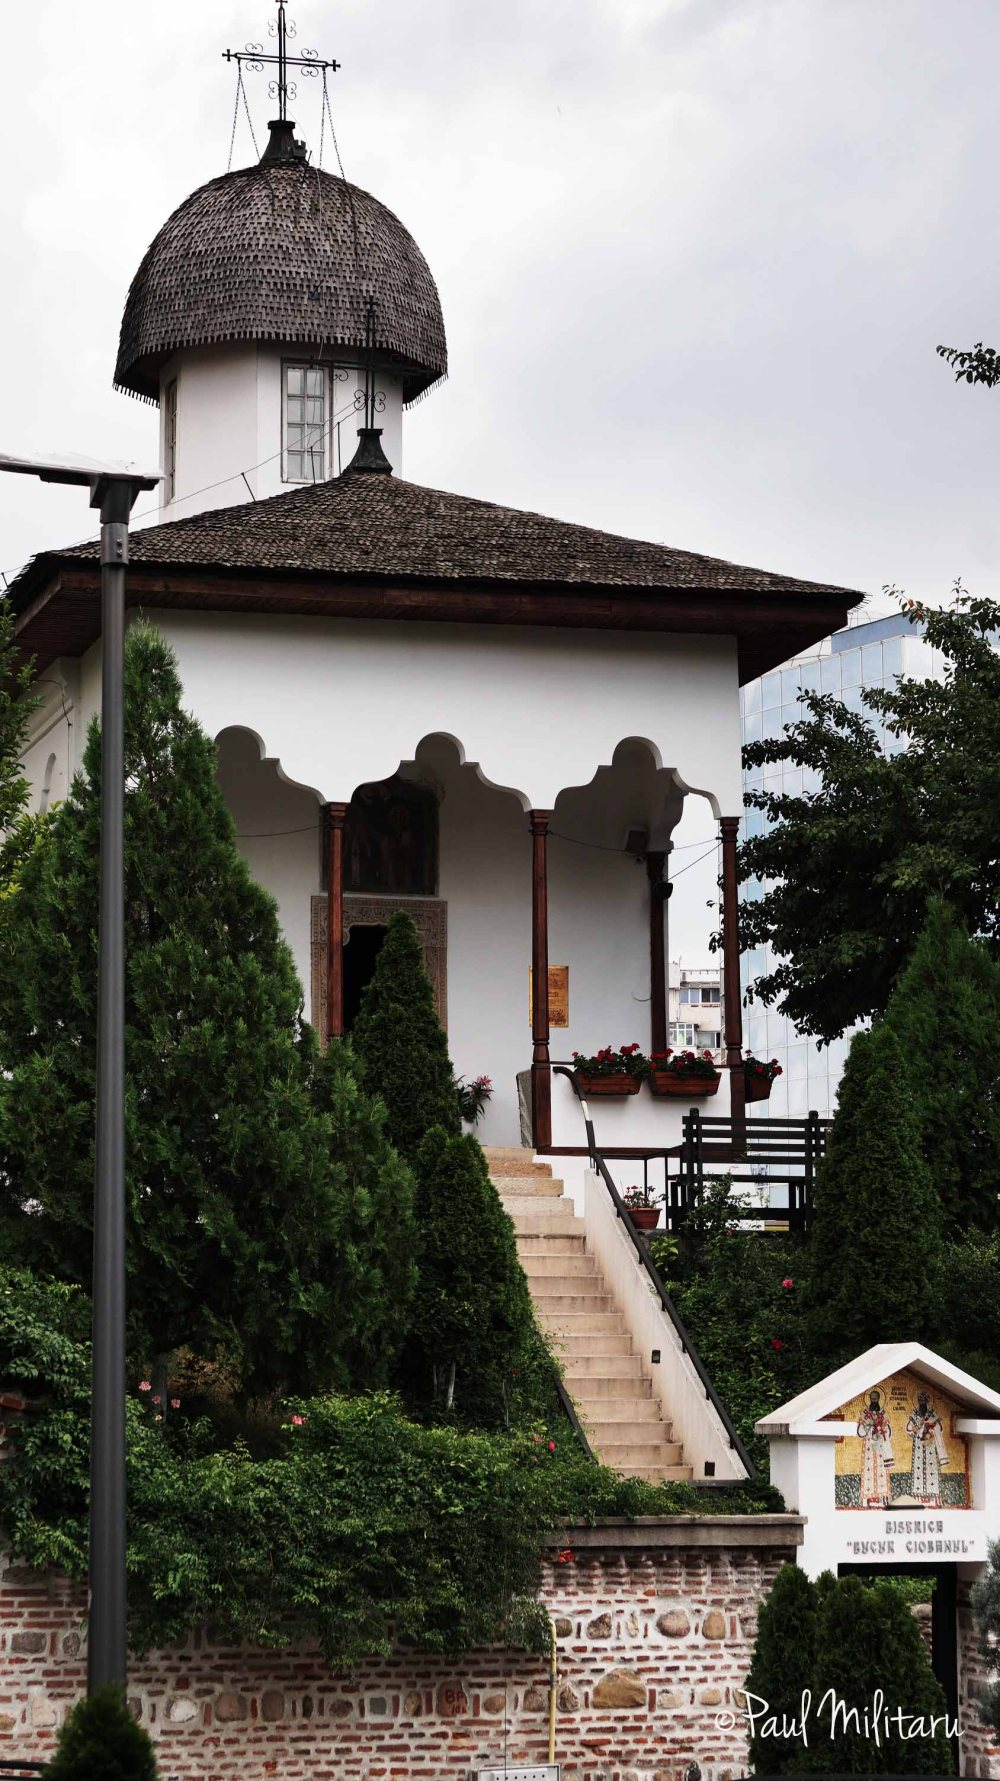 Bucur church